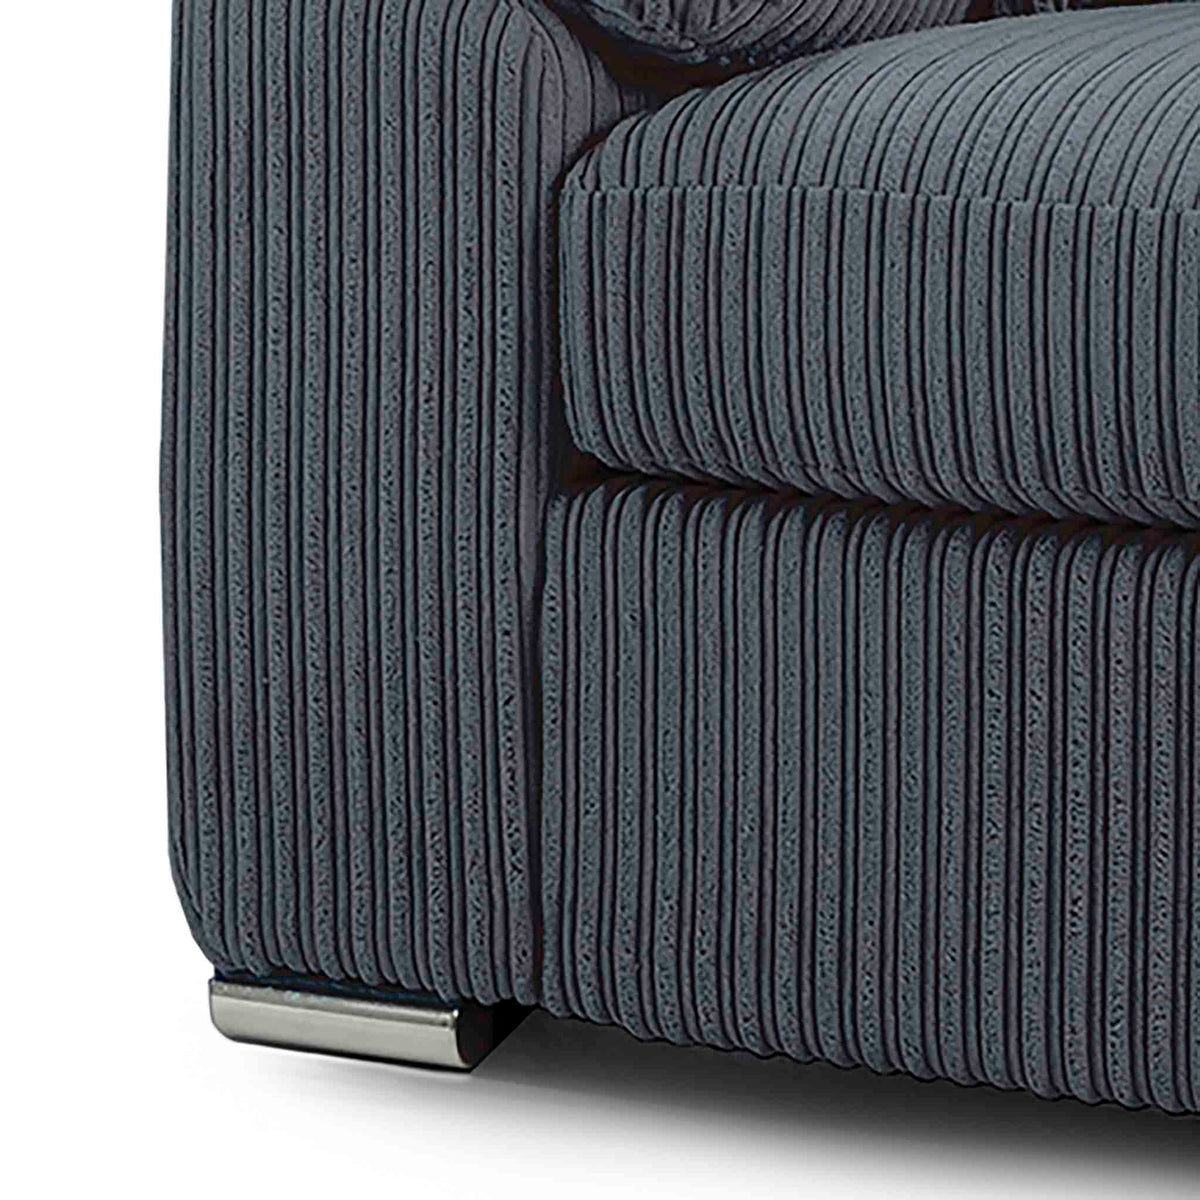 close up of the stainless steel feet on the Amalfi Charcoal Corner Fabric Sofa